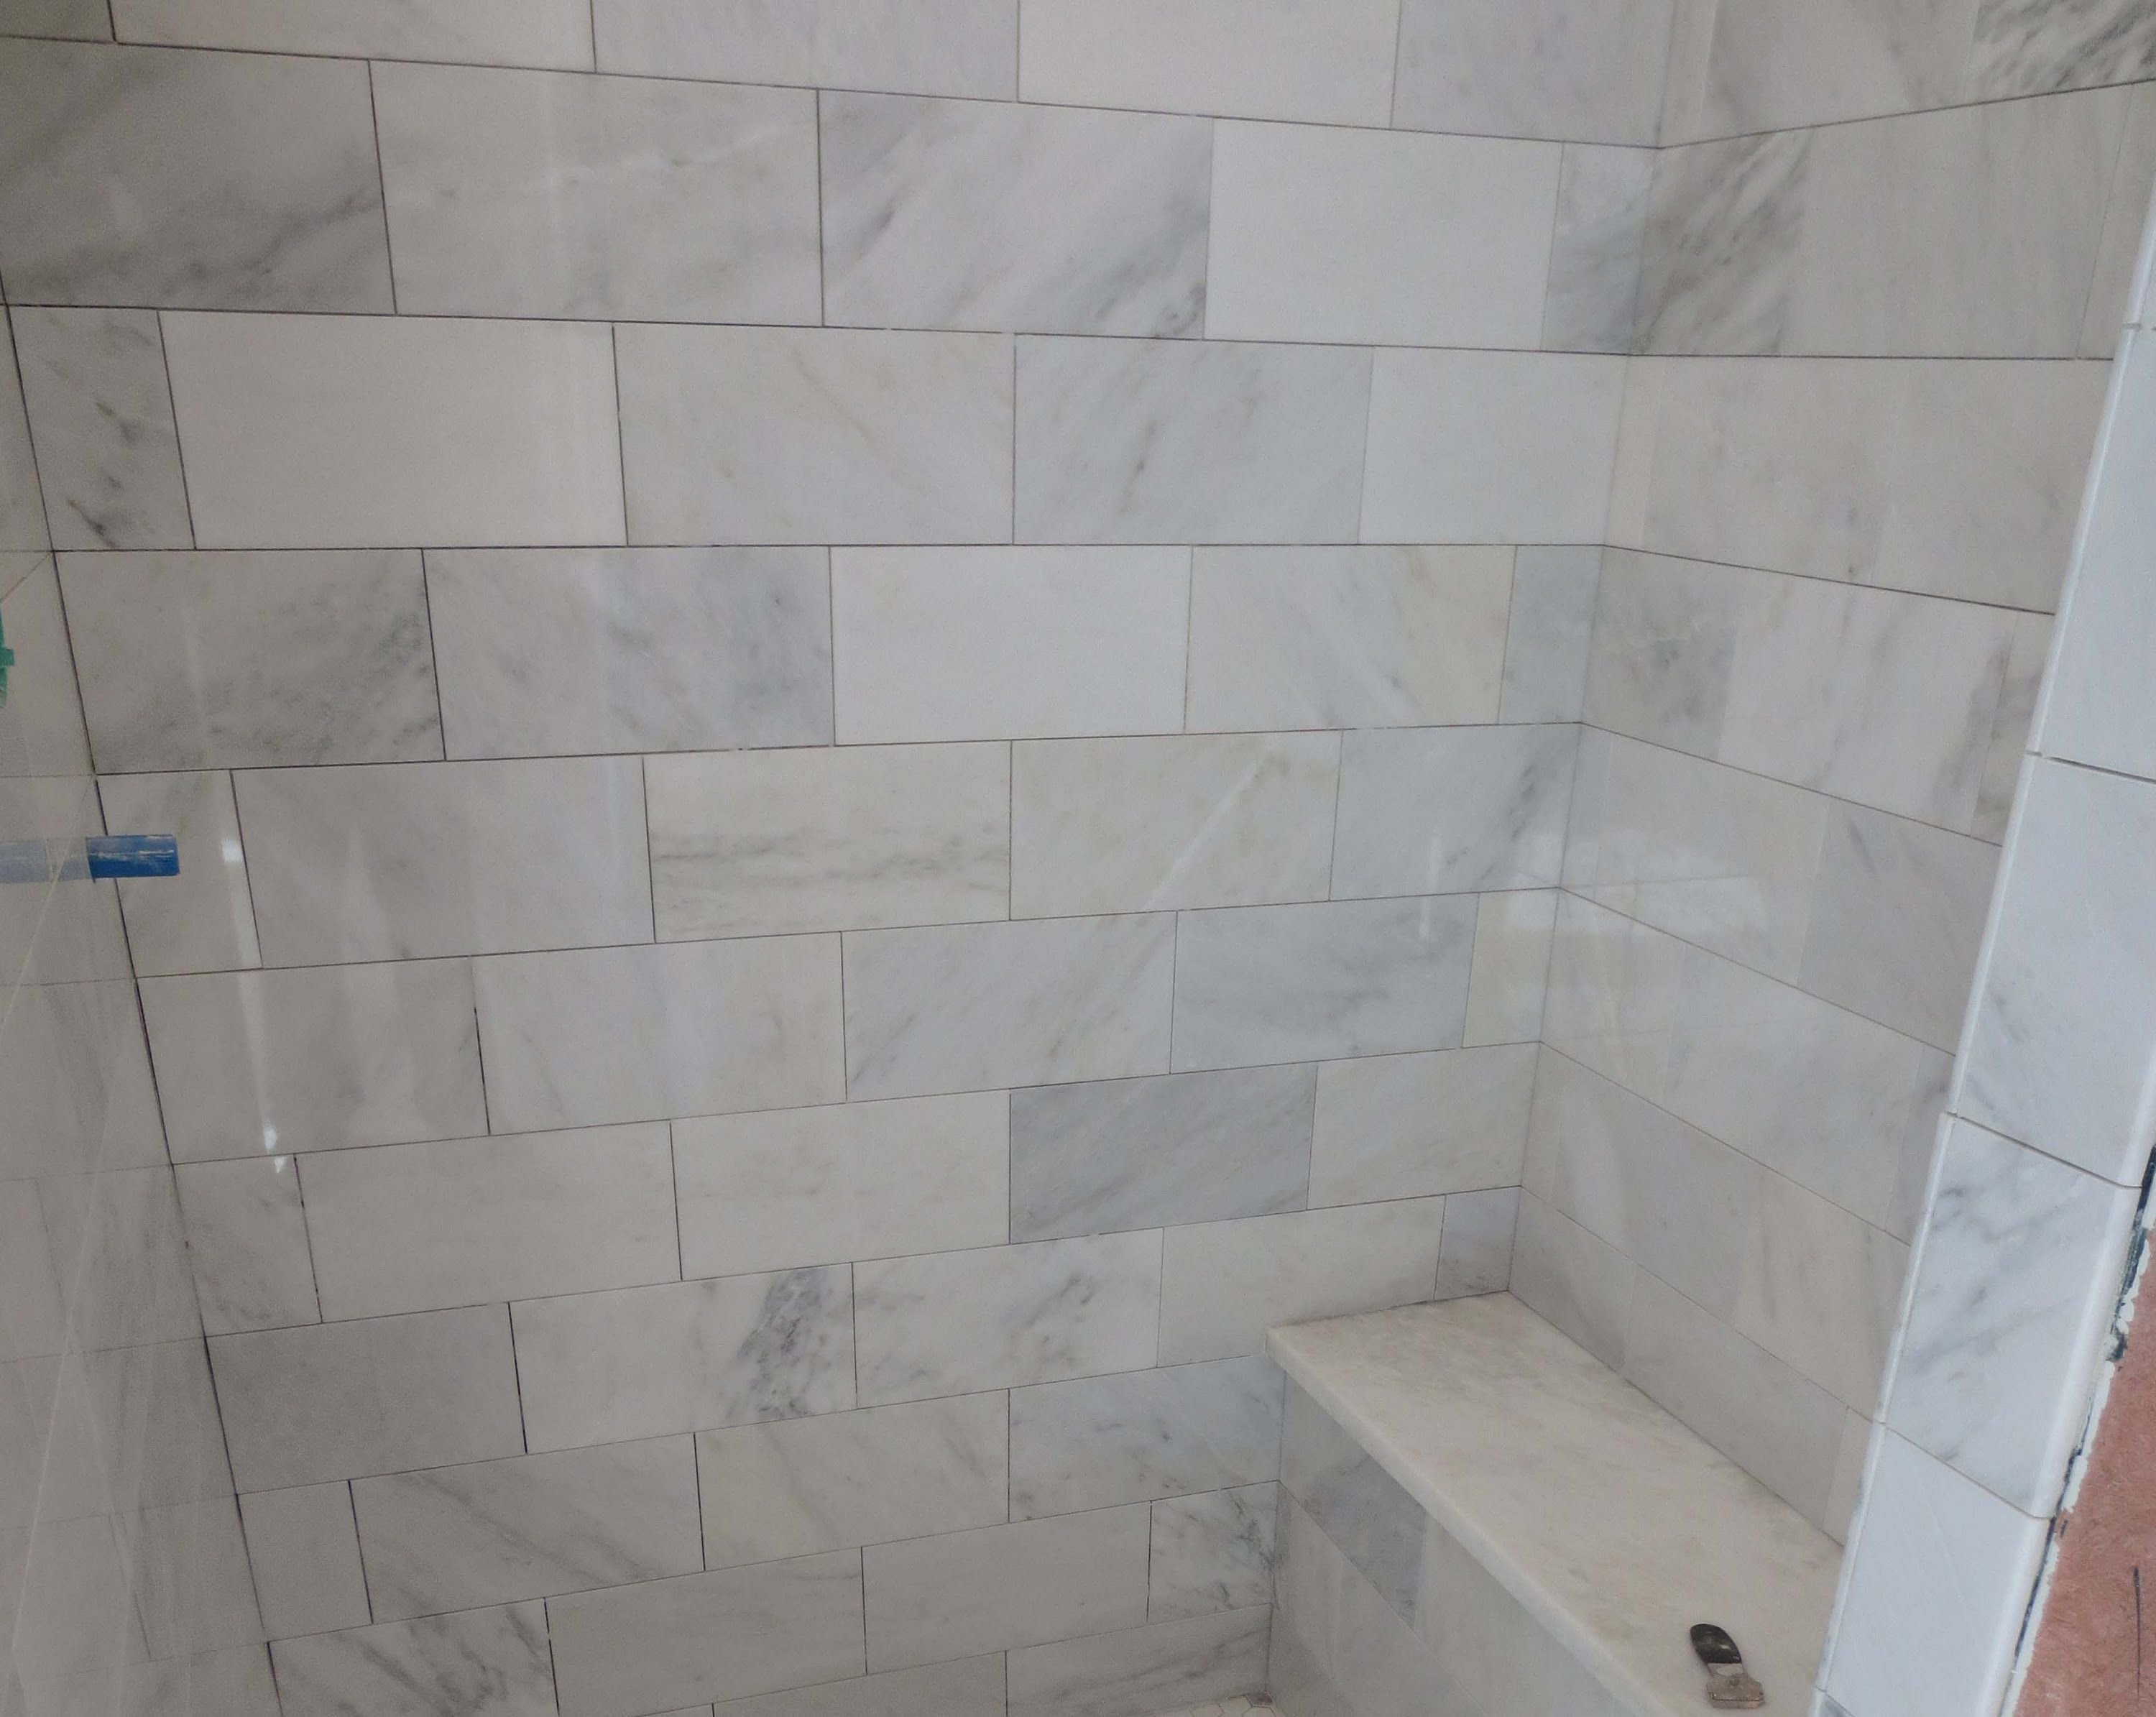 White Marble Tile Bathroom the marble carrara tile bathroom part 3 close up look installing